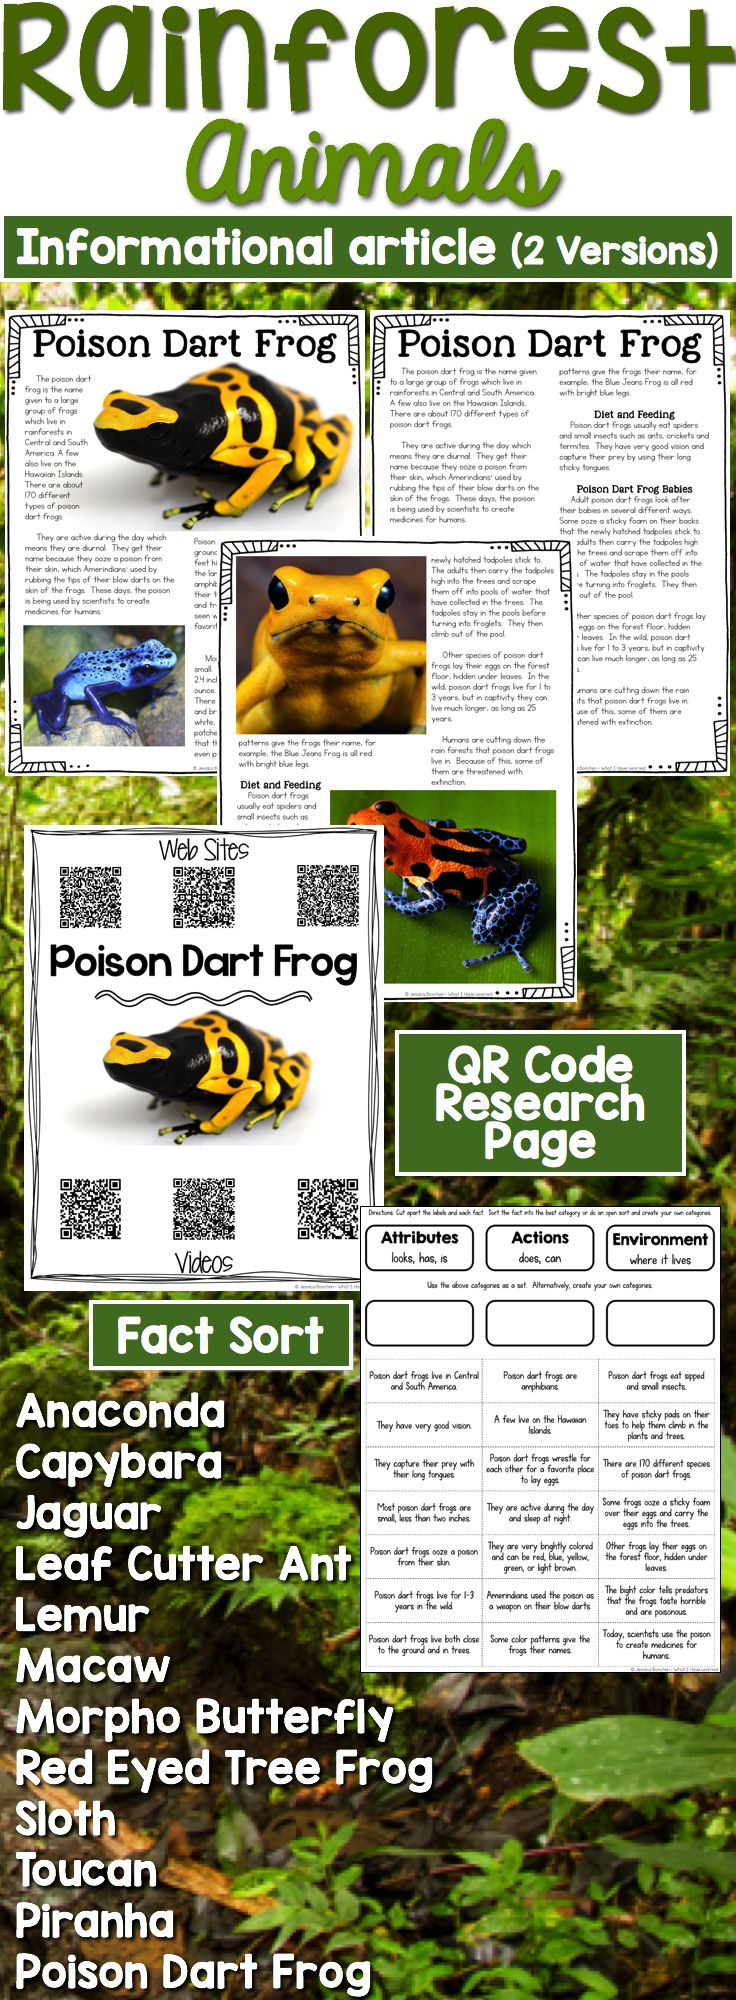 Rainforest Animals: Informational Article, QR Code Research Page & Fact Sort is a set of 12 informational articles all about Rainforest Animals. These articles are full of interesting facts and details that students can use during reading and writing activities.